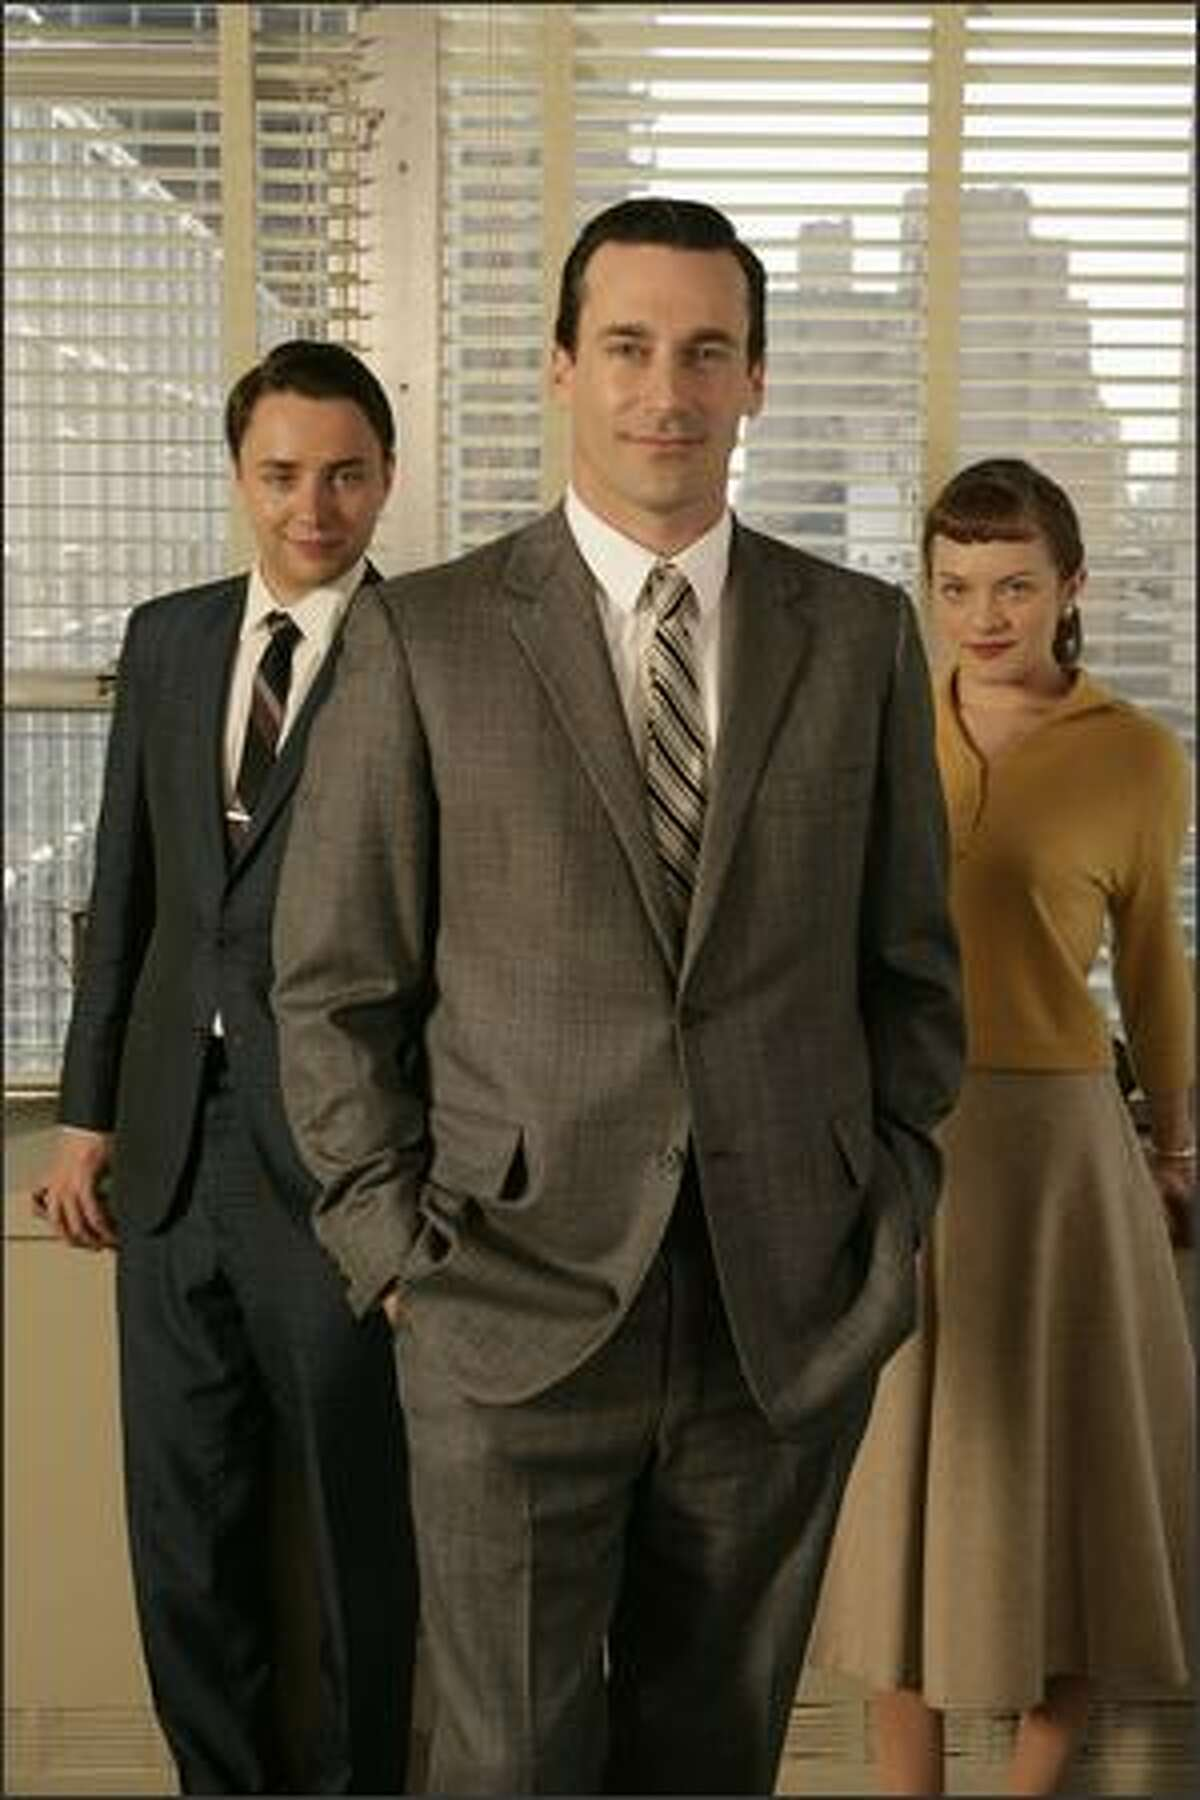 """Vincent Kartheiser, Jon Hamm and Elisabeth Moss star in the AMC drama series """"Mad Men."""" The show as nominated for Best Drama and Hamm was nominated for Best Actor in a Drama Series."""